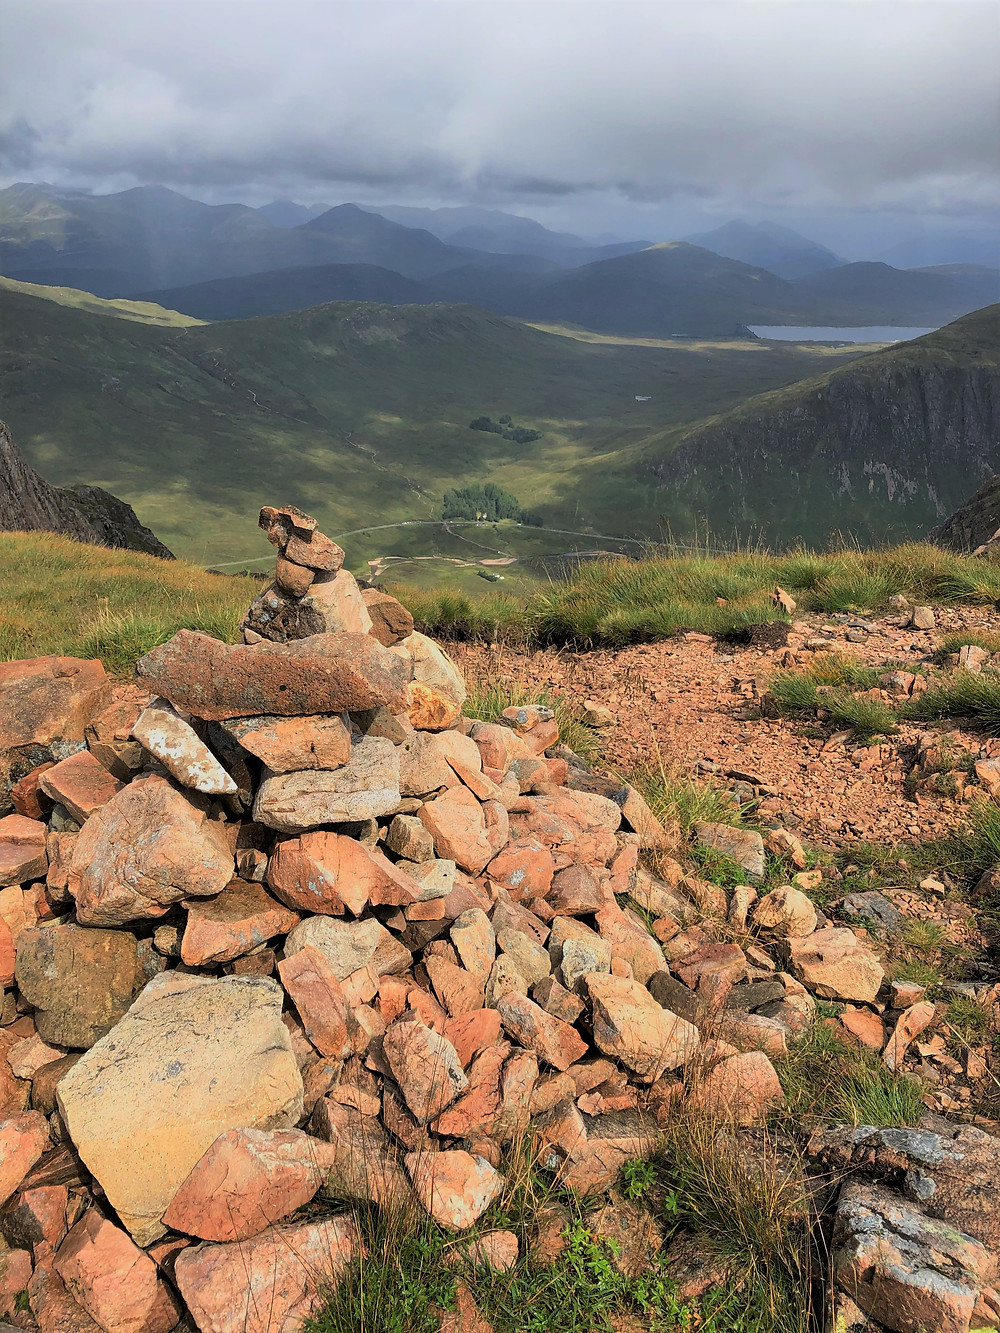 View of Scottish Highlands from the saddle or baelach at 2,850 ft on the climb to the summit of Buachaille Etive Mòr in the Scottish Highlands